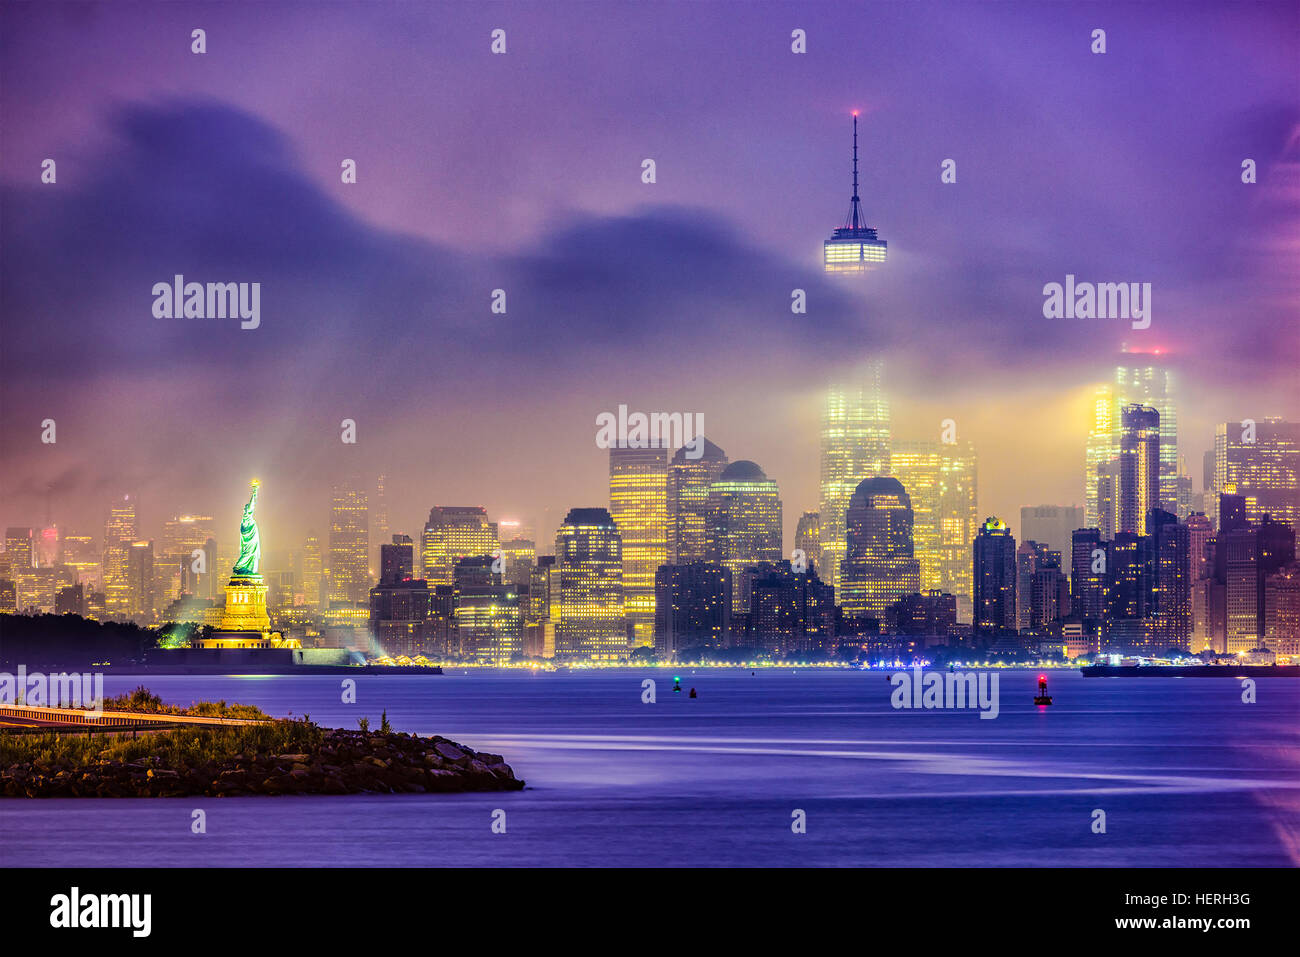 New York City skyline on a foggy night. - Stock Image